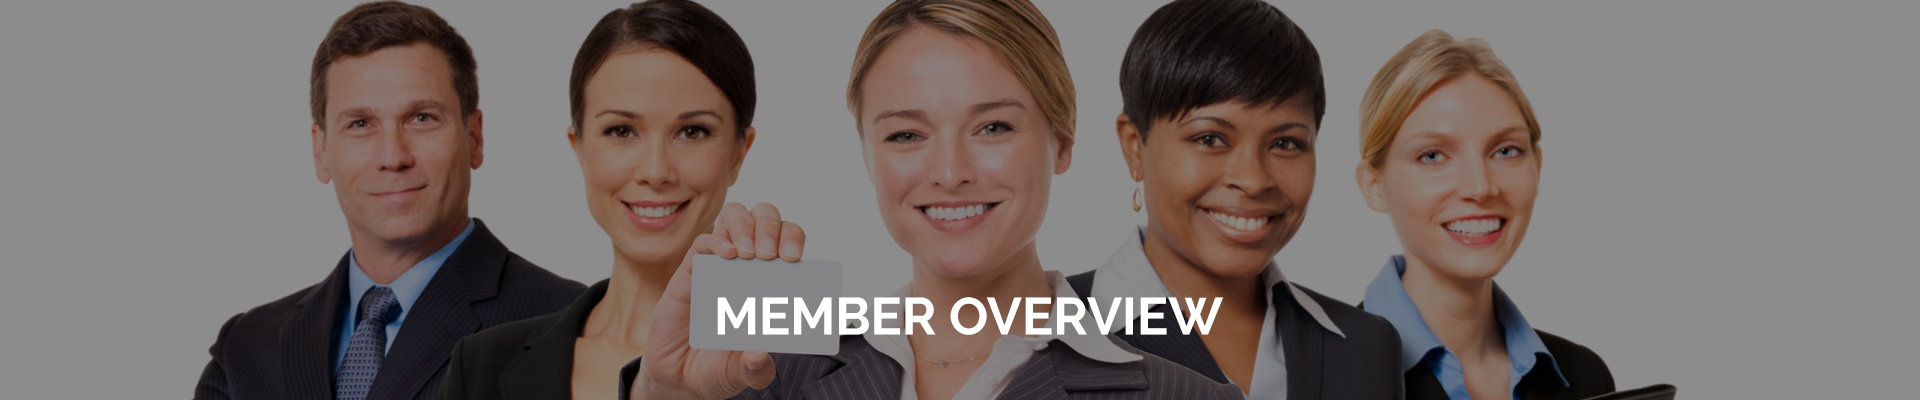 Member Benefits Overview Header